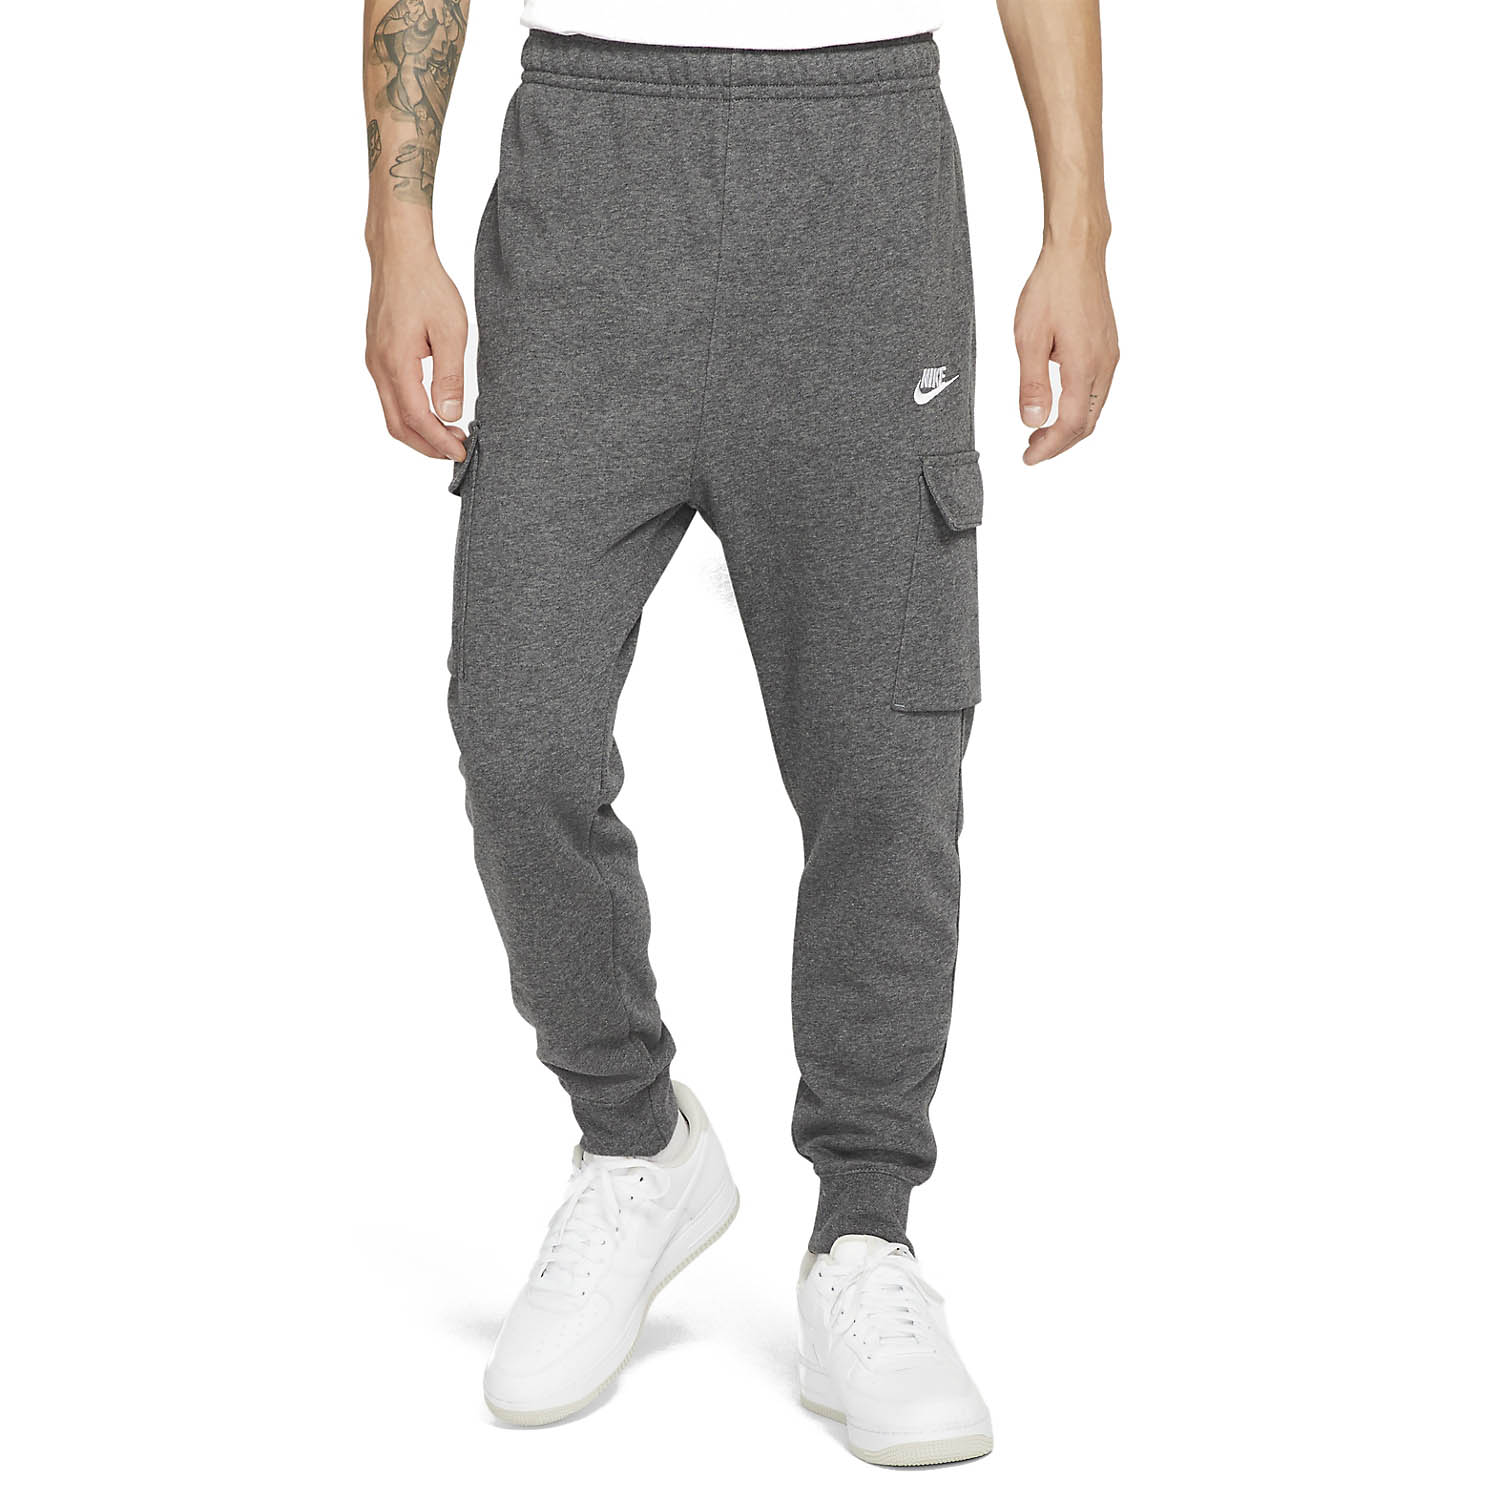 NIKE Брюки мужские SPORTSWEAR CLUB FLEECE, grey2